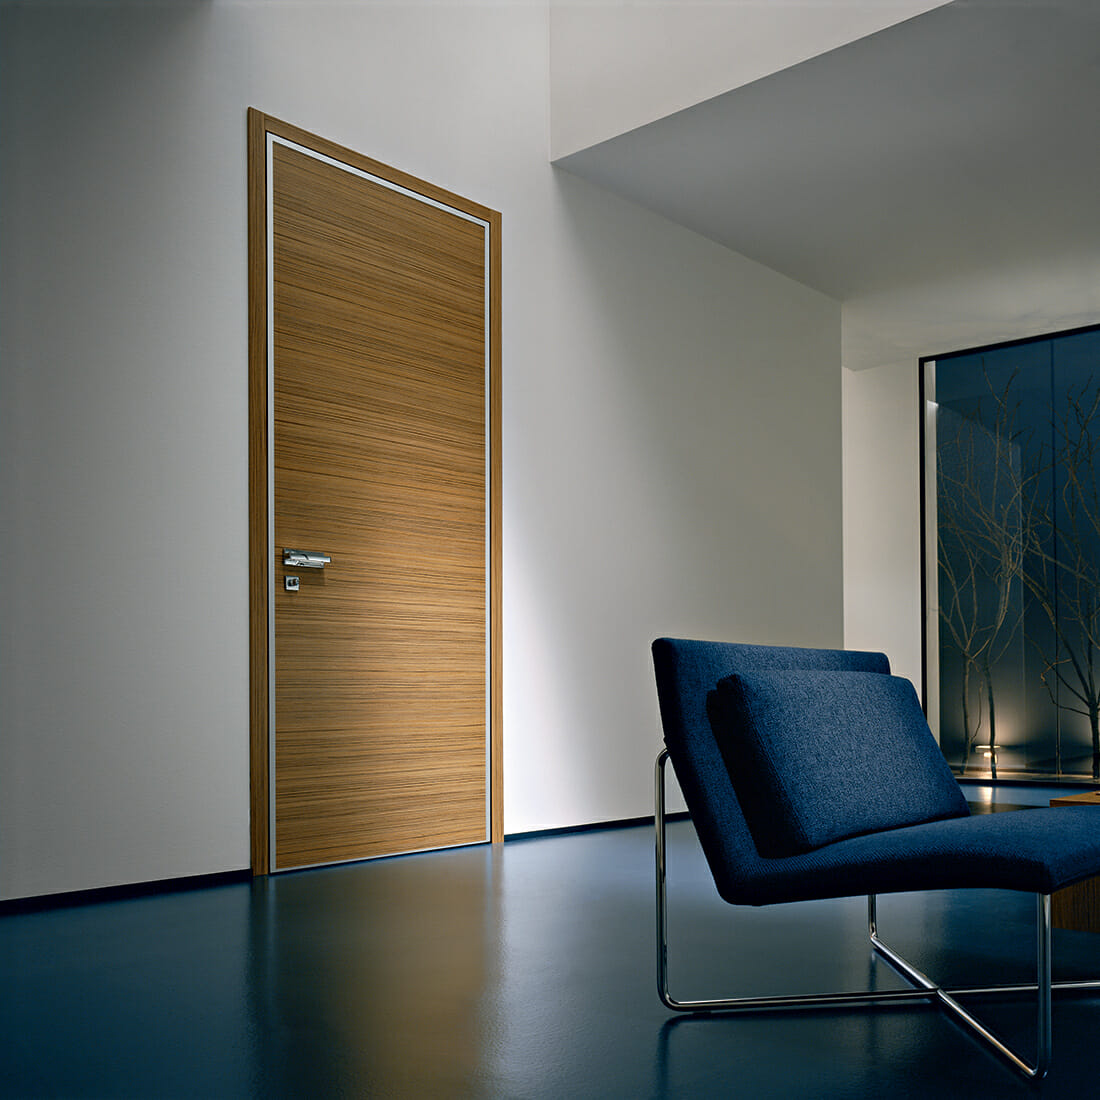 Bauxt armoured doors - design and professional line, 100% made in Italy